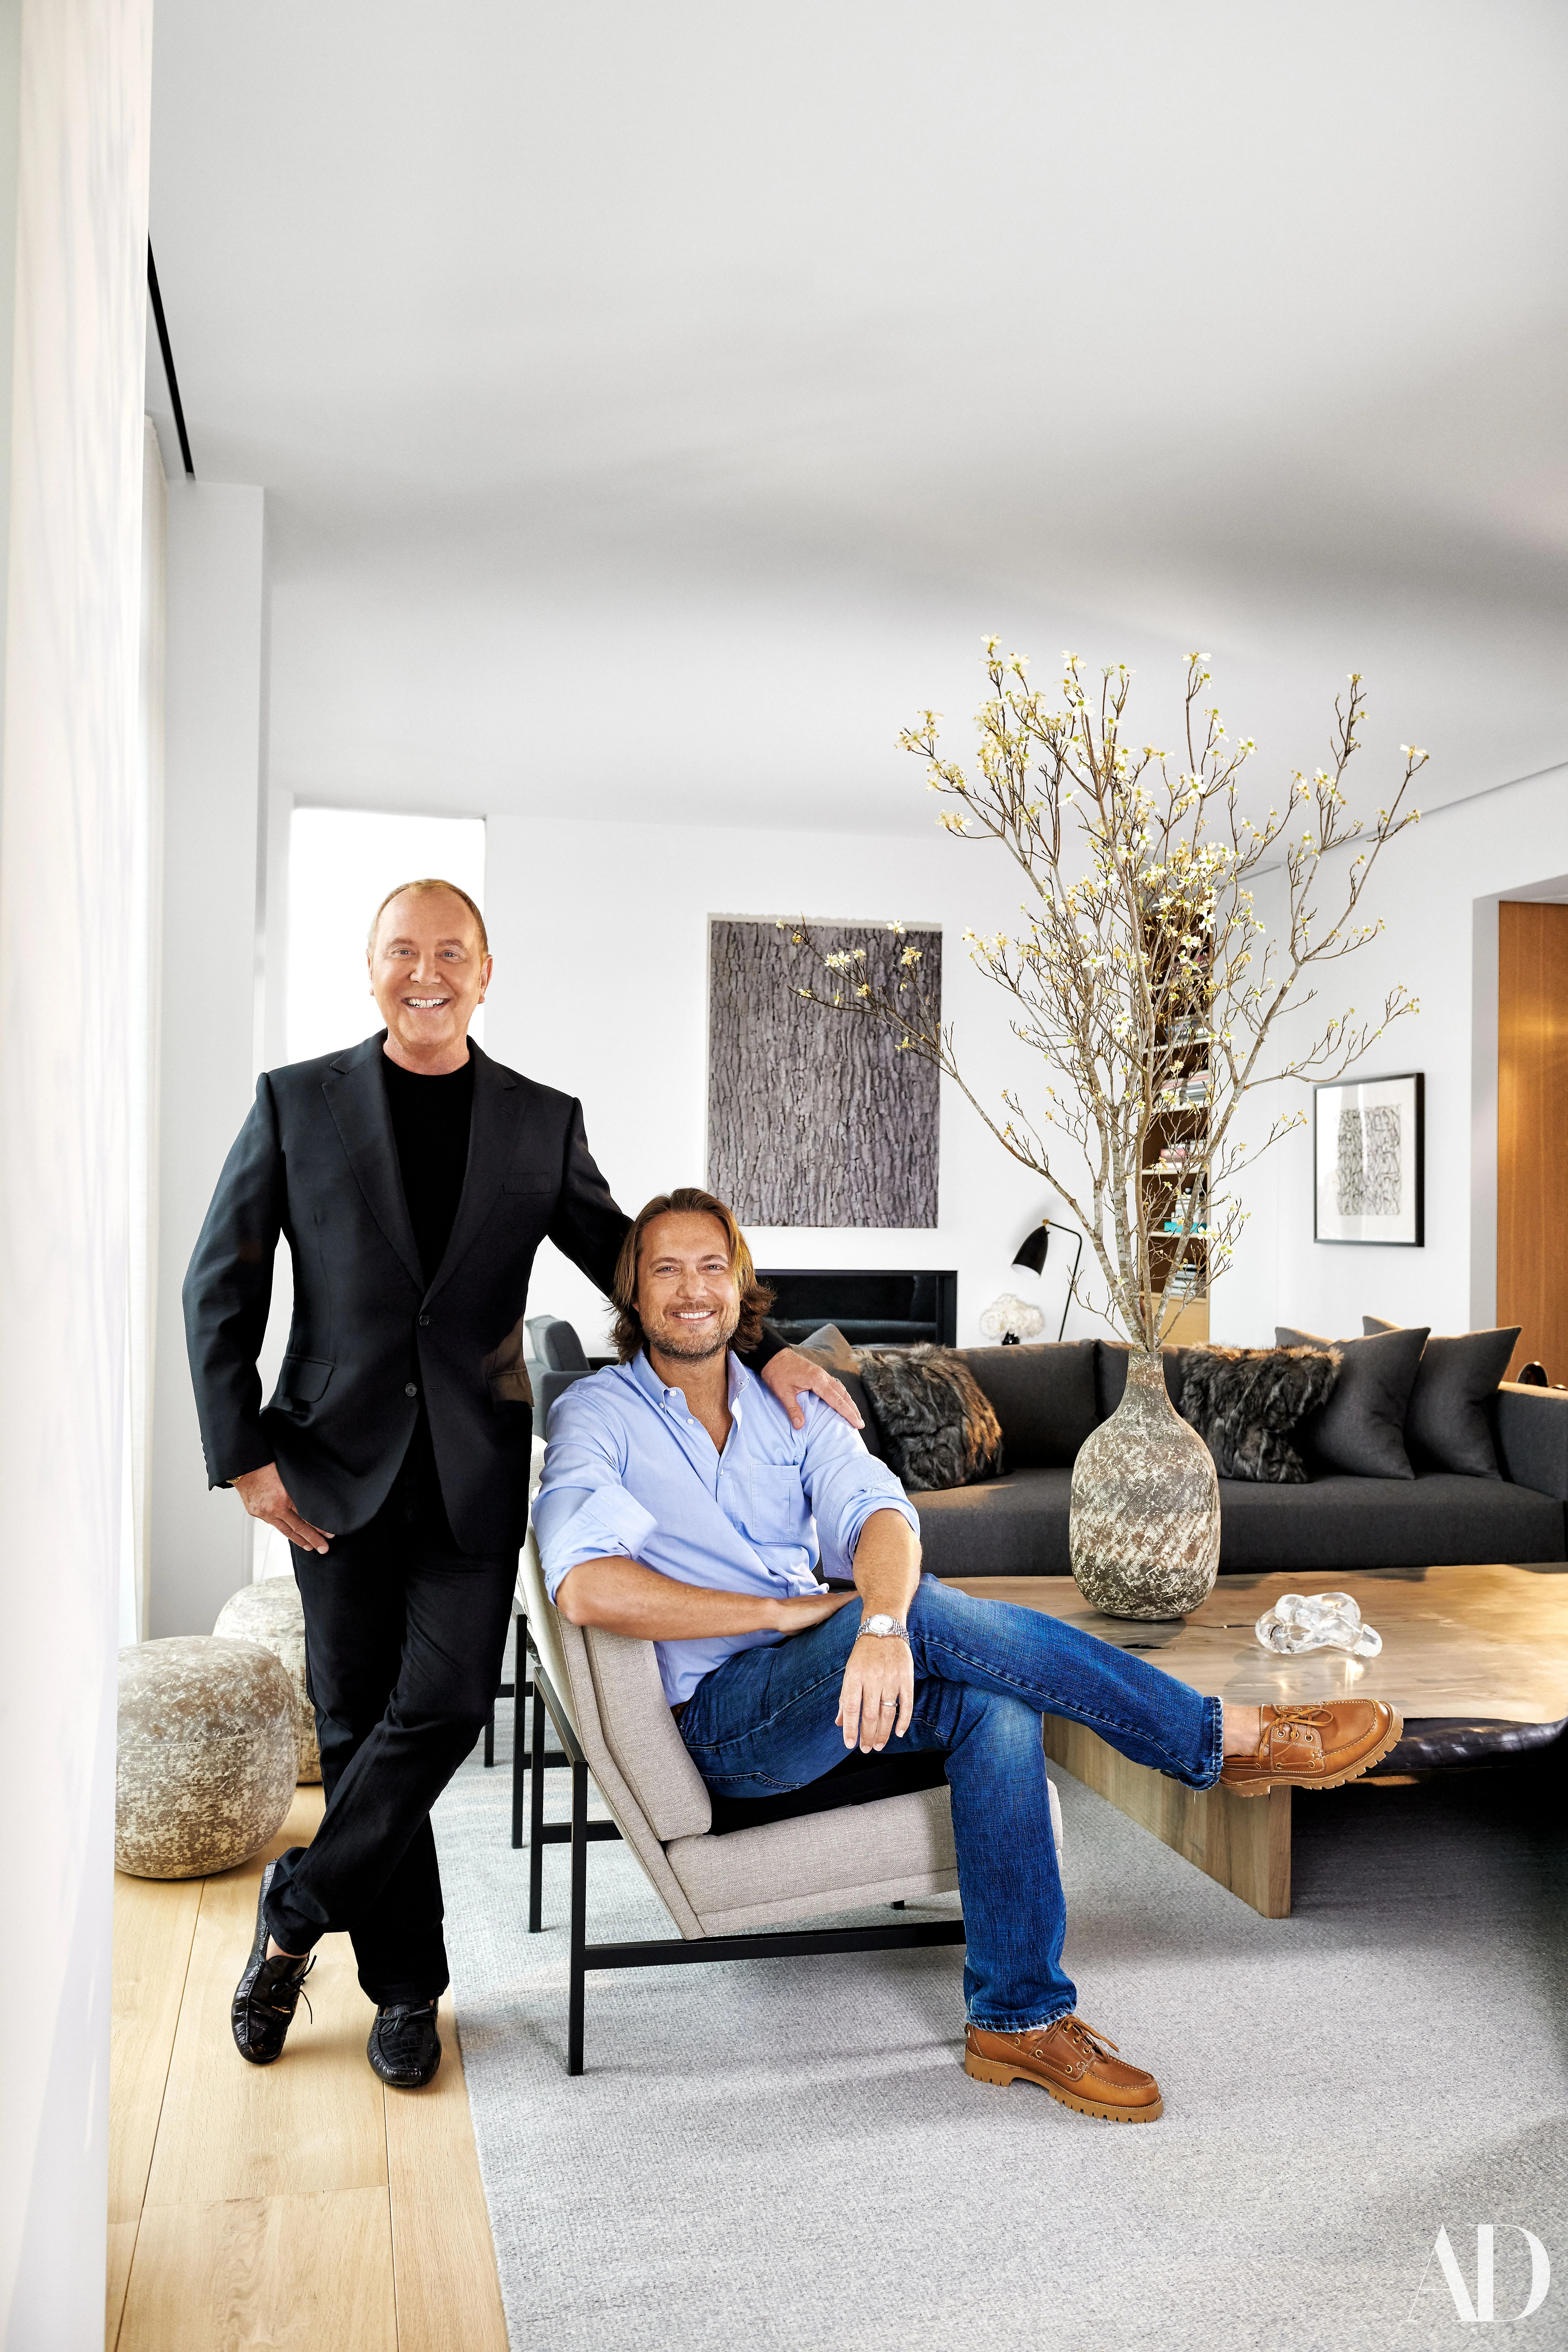 Michael Kors Takes AD Inside His Sprawling New York City Penthouse Architectural Digest